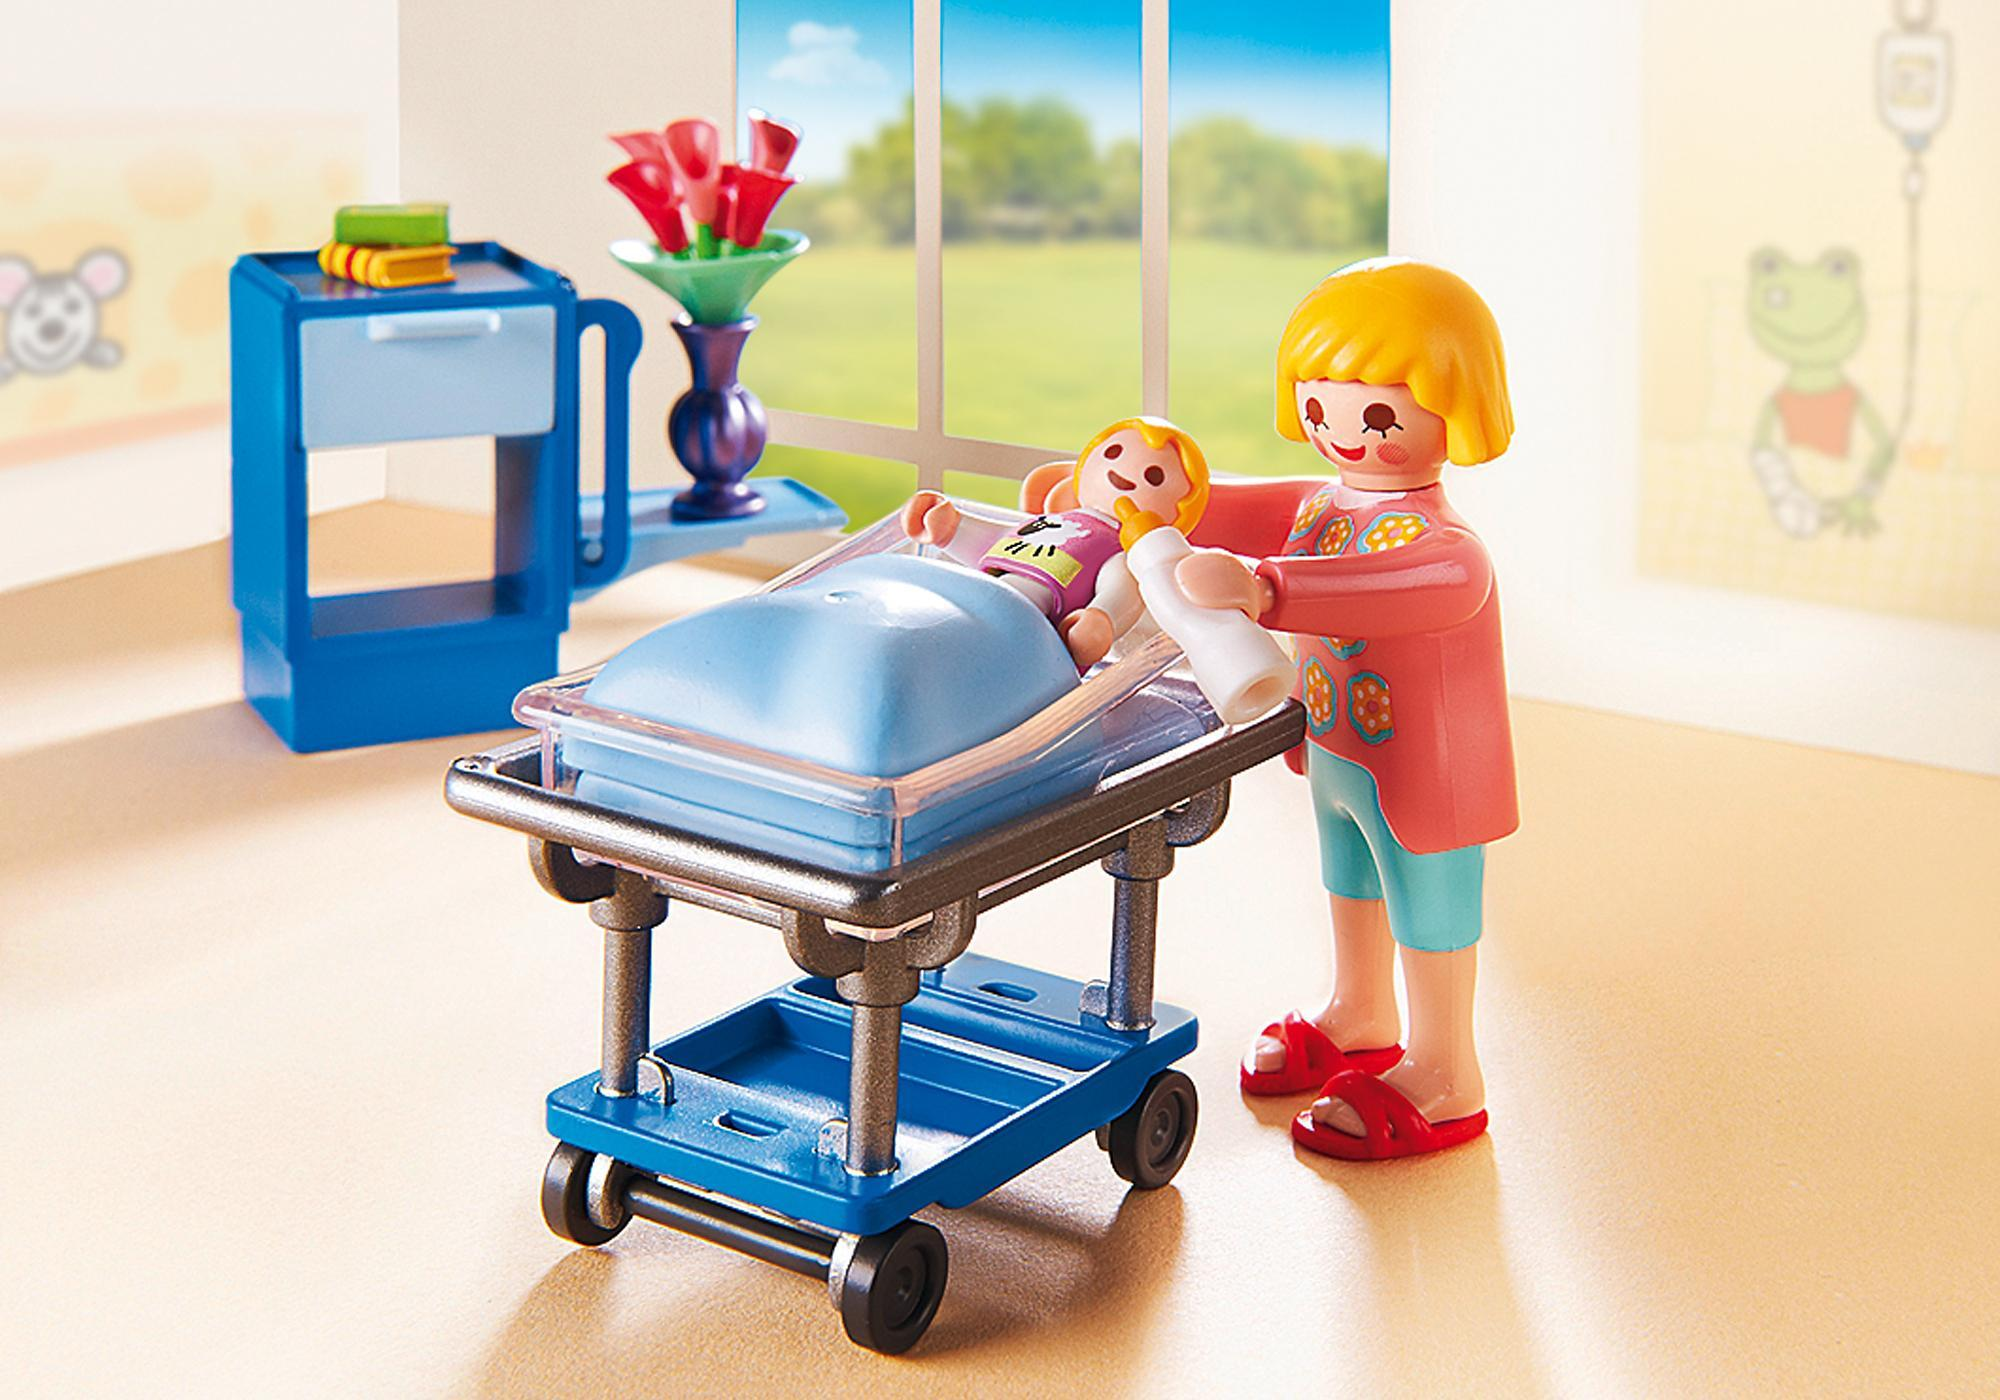 http://media.playmobil.com/i/playmobil/6660_product_extra1